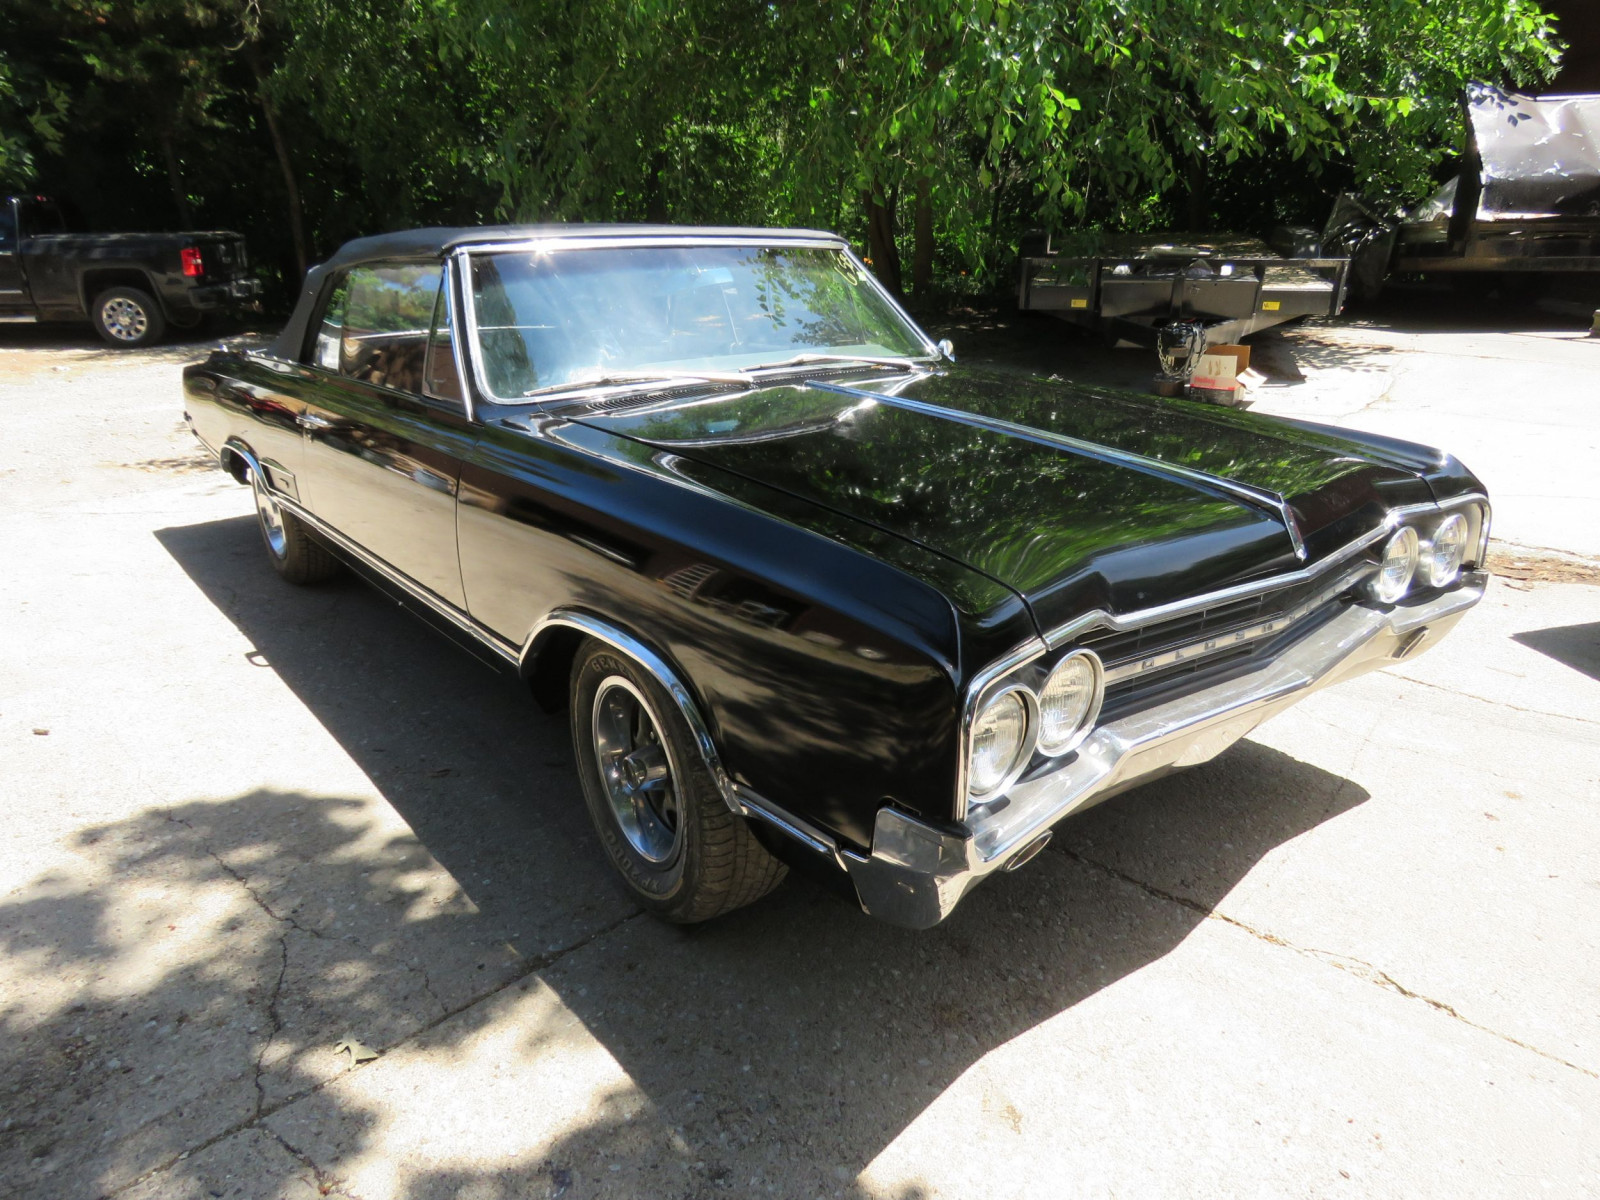 1965 Oldsmobile Cutlass Convertible - Image 1